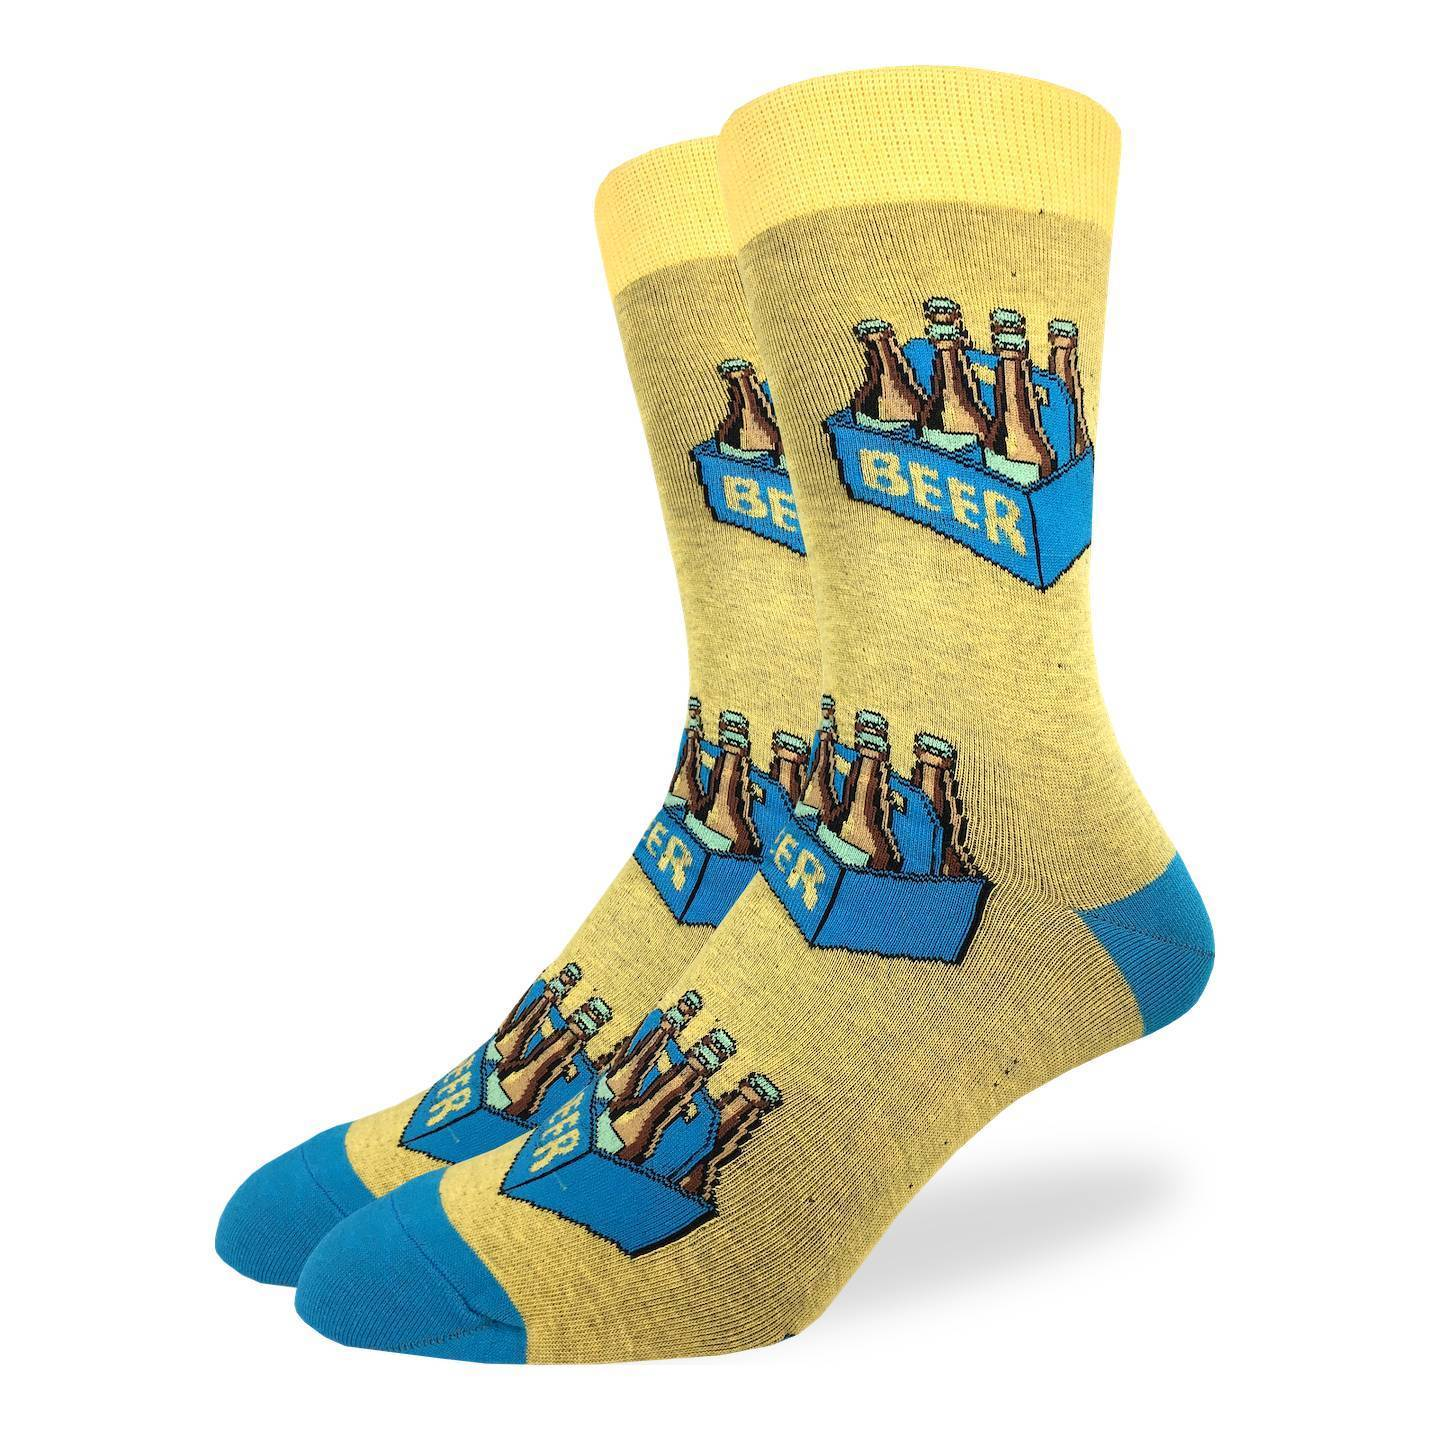 Men's King Size Six Pack of Beer Socks - Good Luck Sock